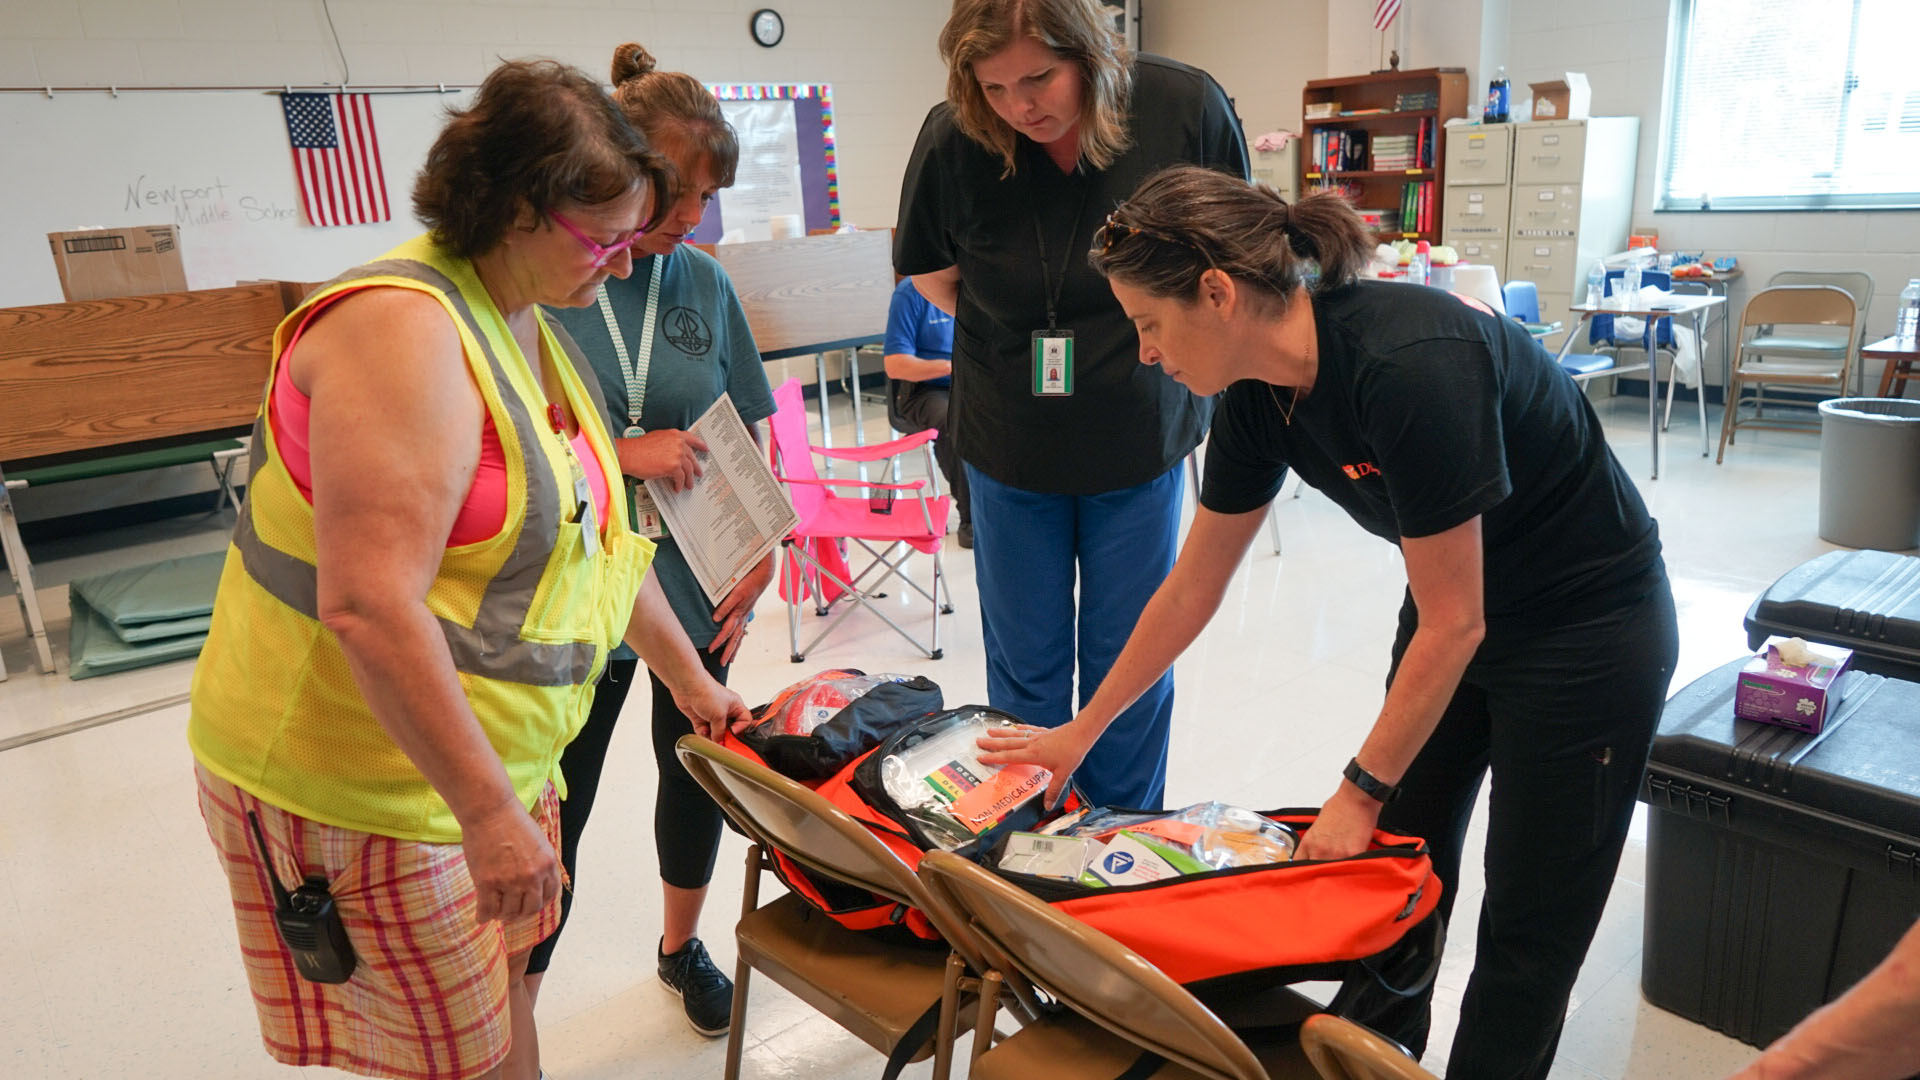 Direct Relief staff deliver emergency medical backpacks to a shelter operating out of a middle school in Newport, North Carolina. The shelter housed more than 400 people after Hurricane Florence made landfall, and health staff there used Direct Relief-provided medical supplies to treat an influx of patients after many were evacuated from their homes in the wake of rising floodwaters. (Lara Cooper/Direct Relief)